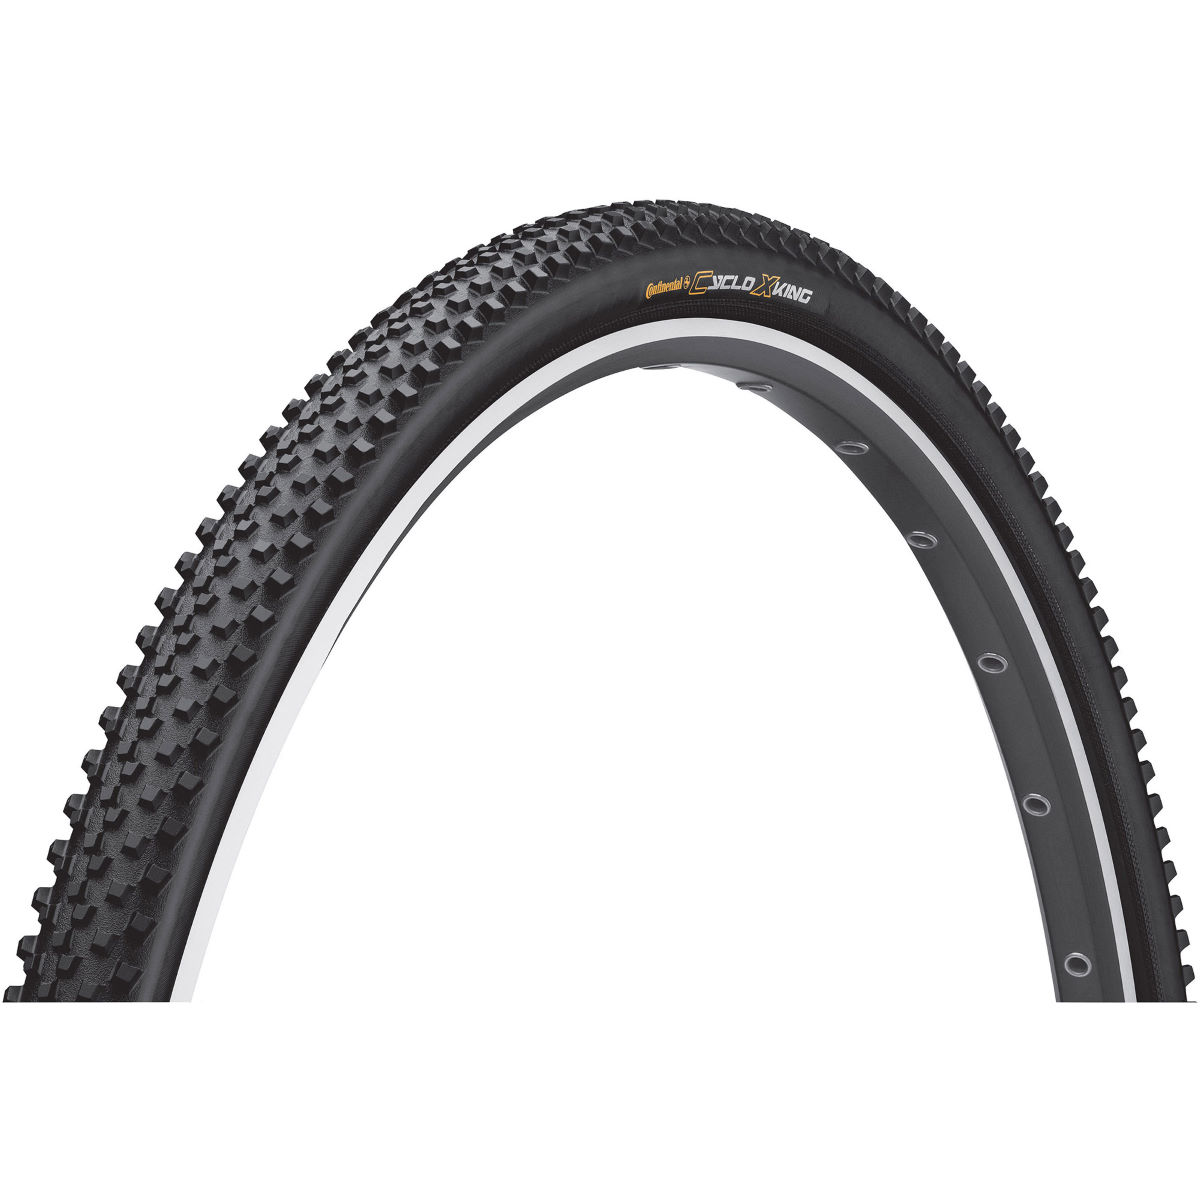 Pneu Continental Cyclo X-King Performance (souple) - 35c 700c Noir